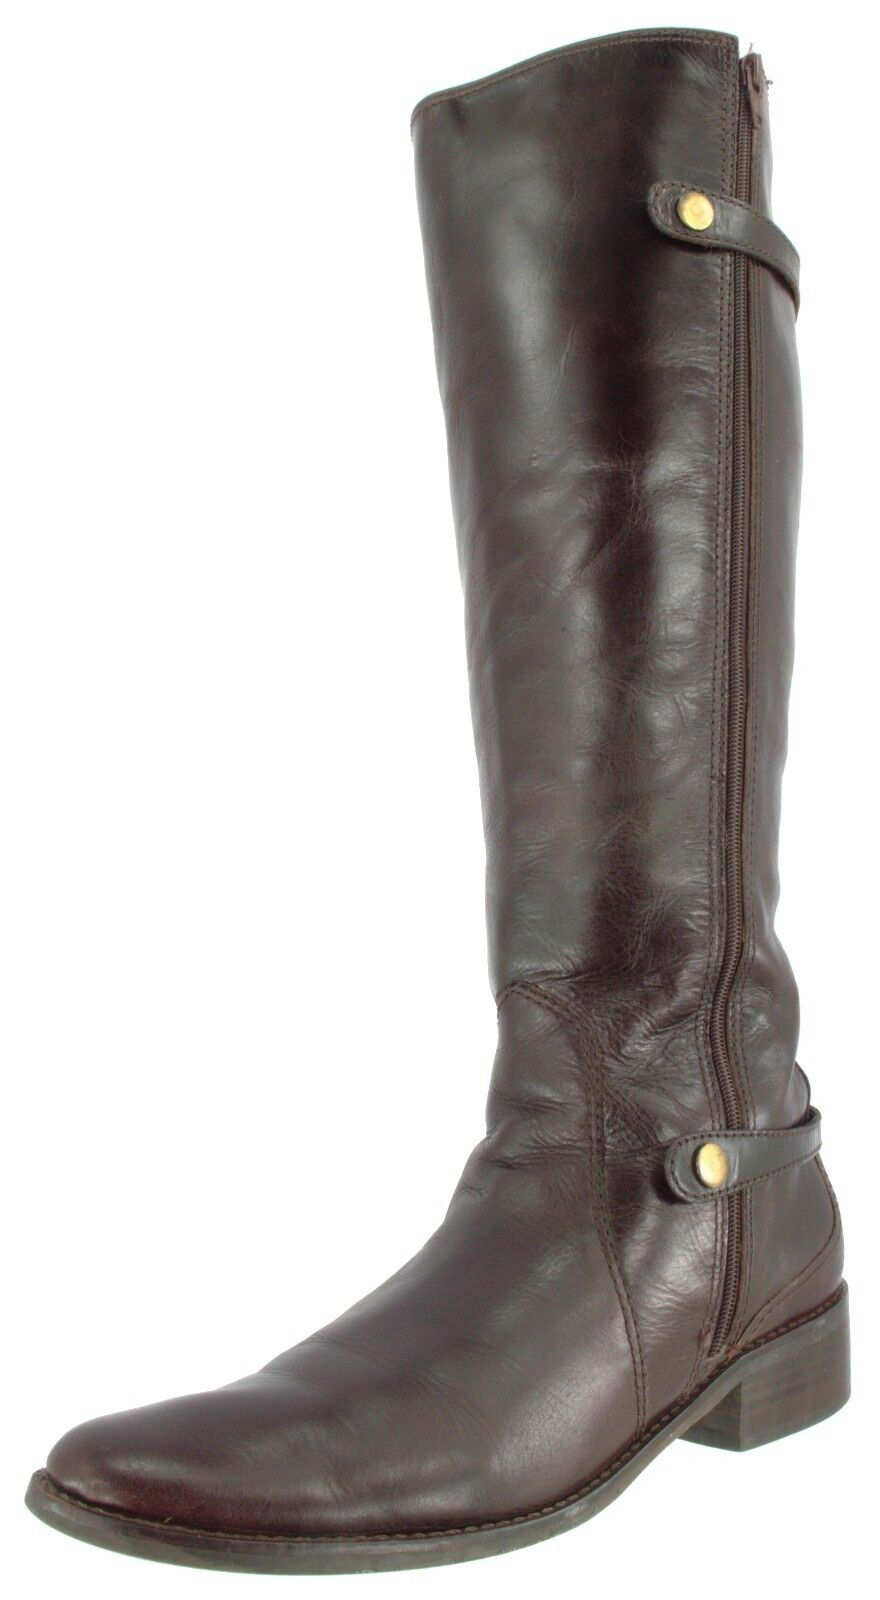 MATISSE USED WOMEN'S LEATHER TALL FASHION RIDING BOOTS  US 8, EU 39